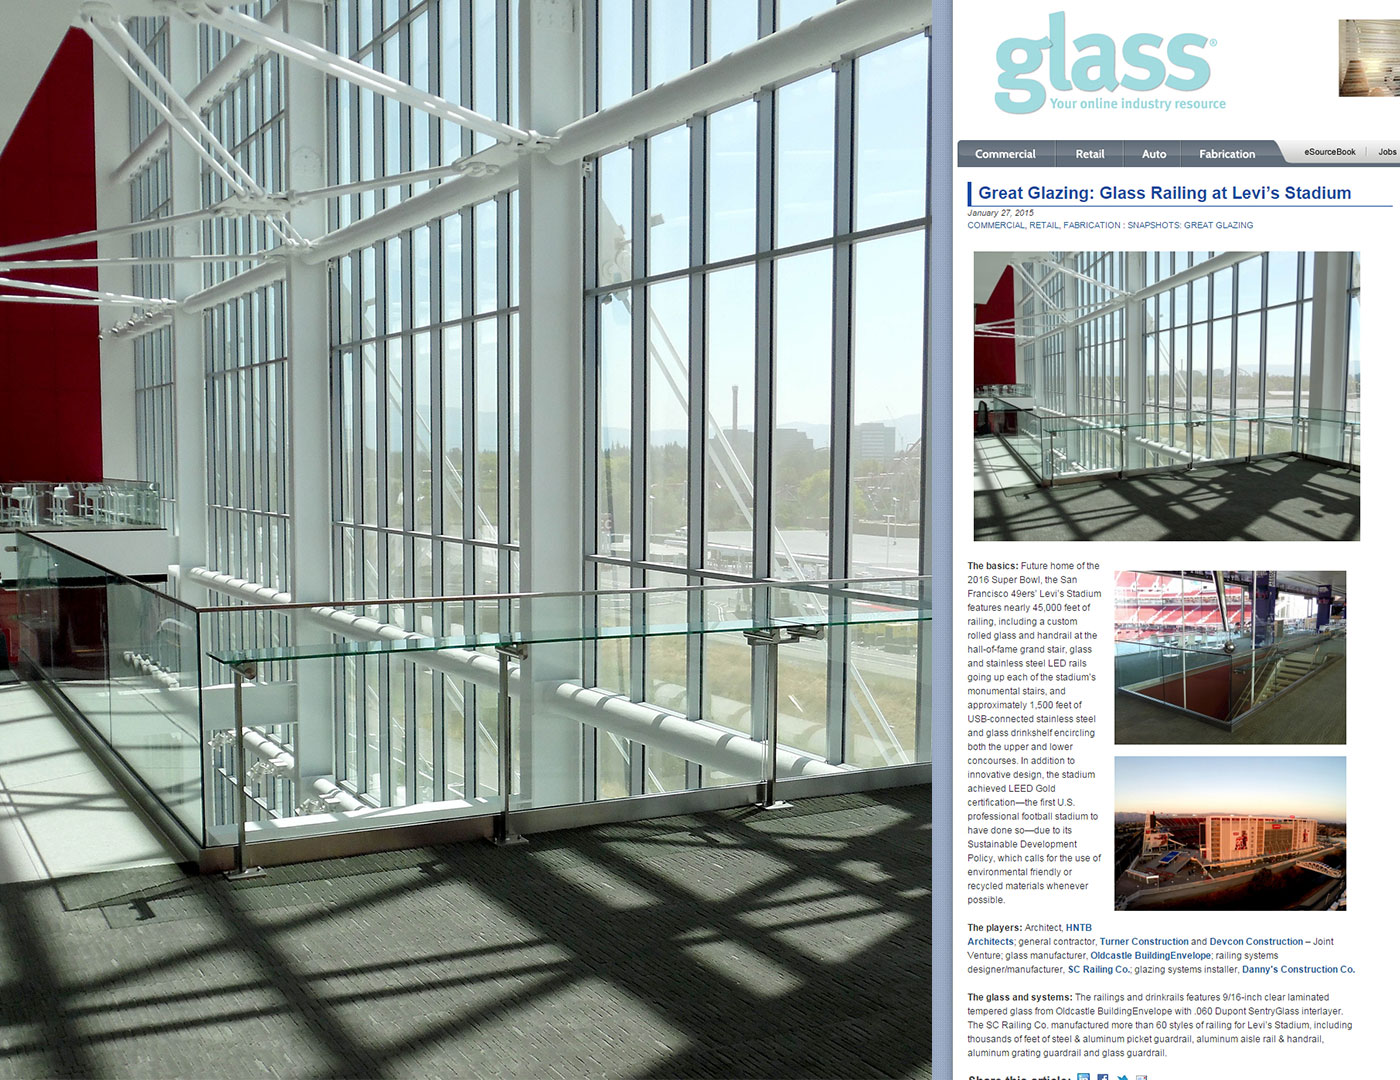 Great Glazing: Glass Railing at Levi's Stadium